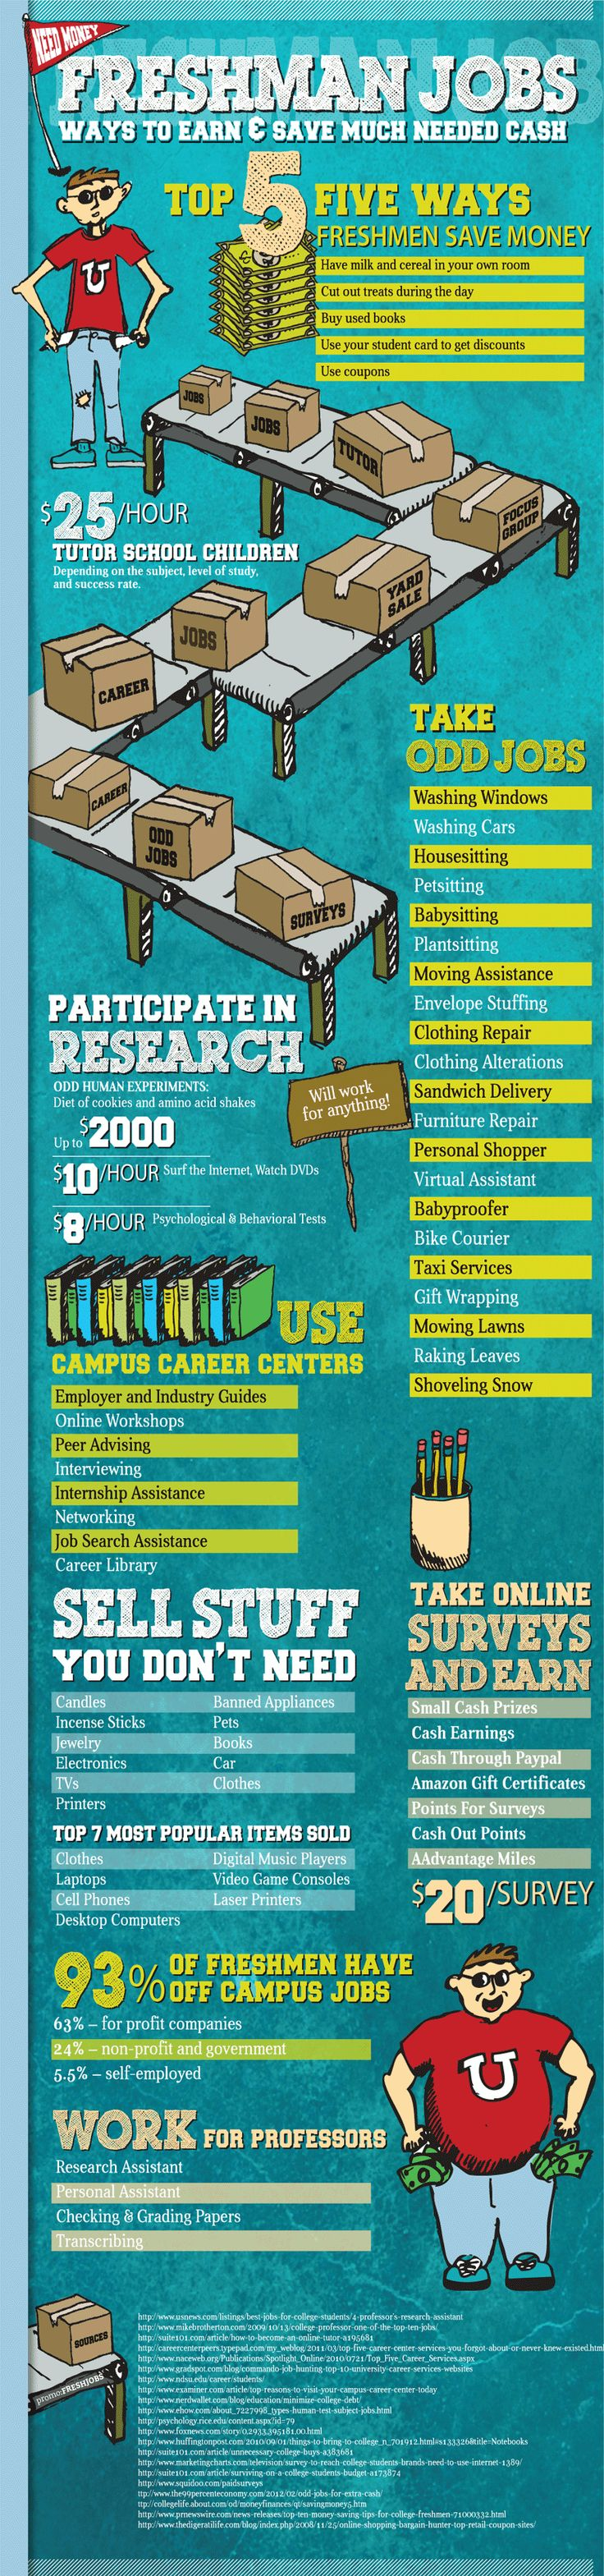 Freshman Jobs: How to Earn and Save Cash in College [INFOGRAPHIC] #college